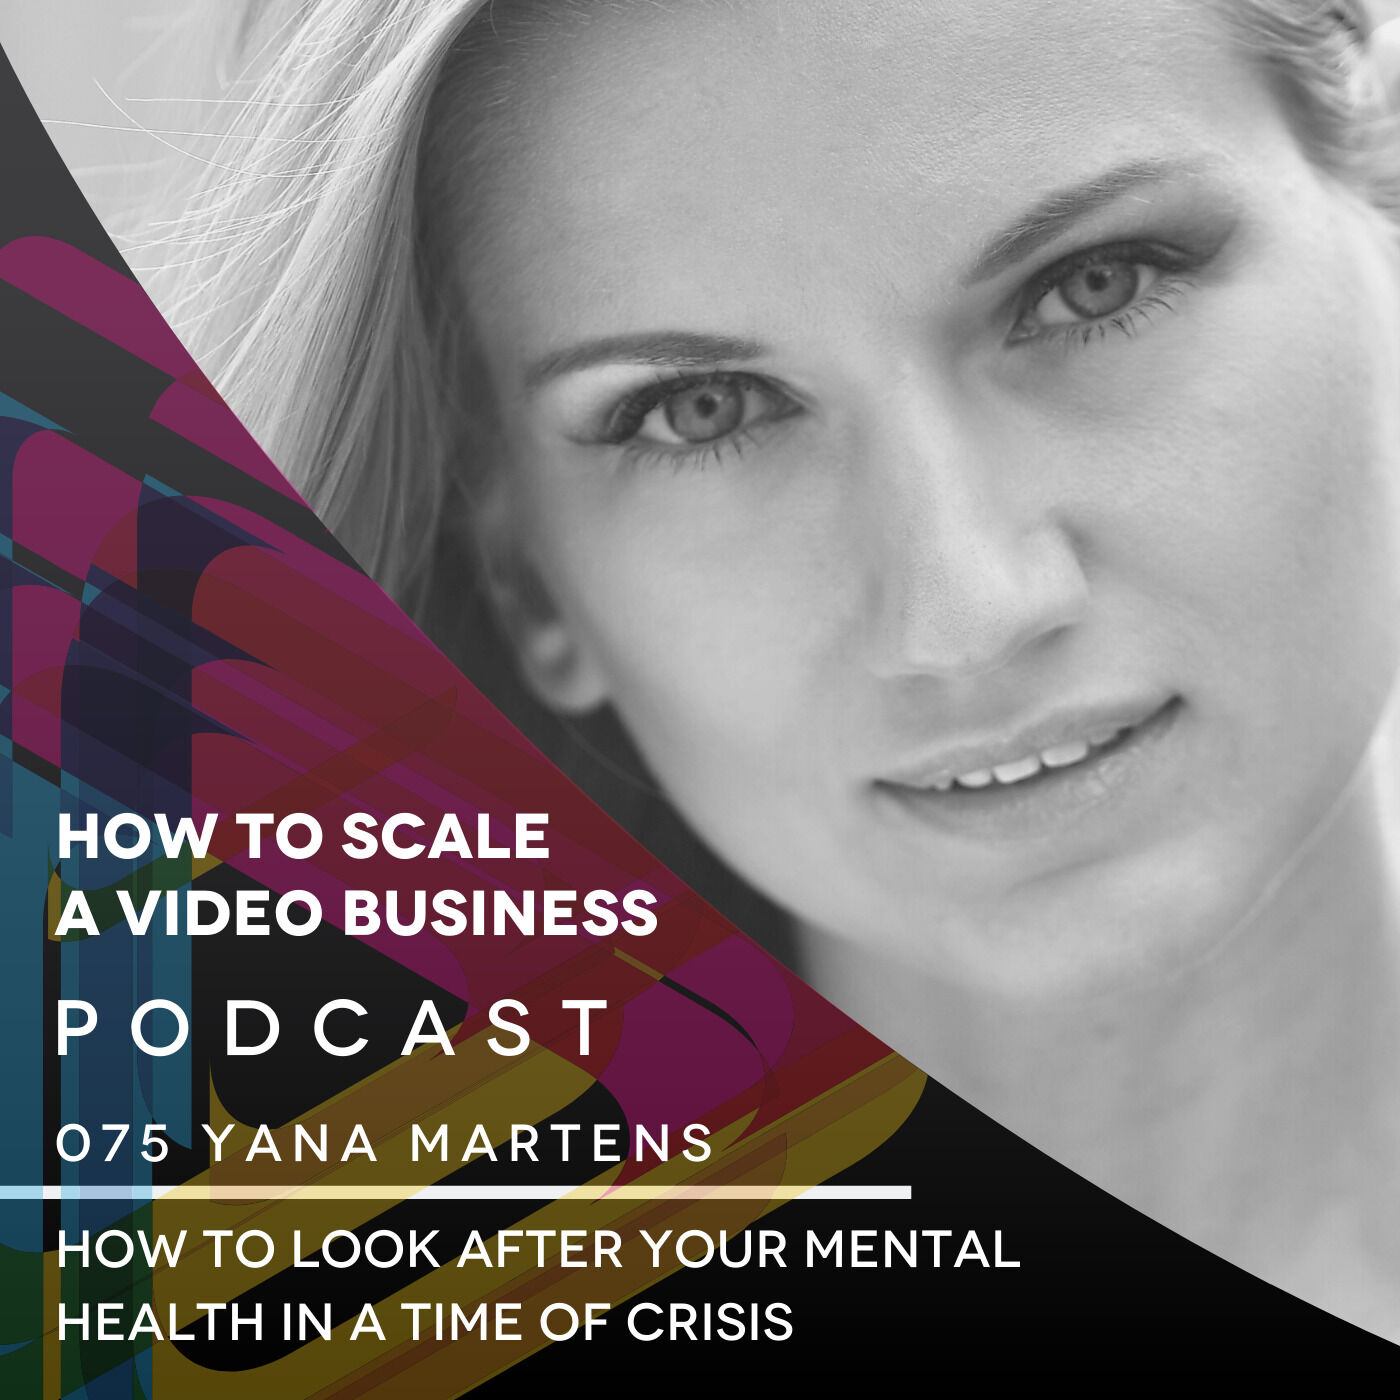 How to look after your mental health in a time of crisis - Yana Martens EP#075